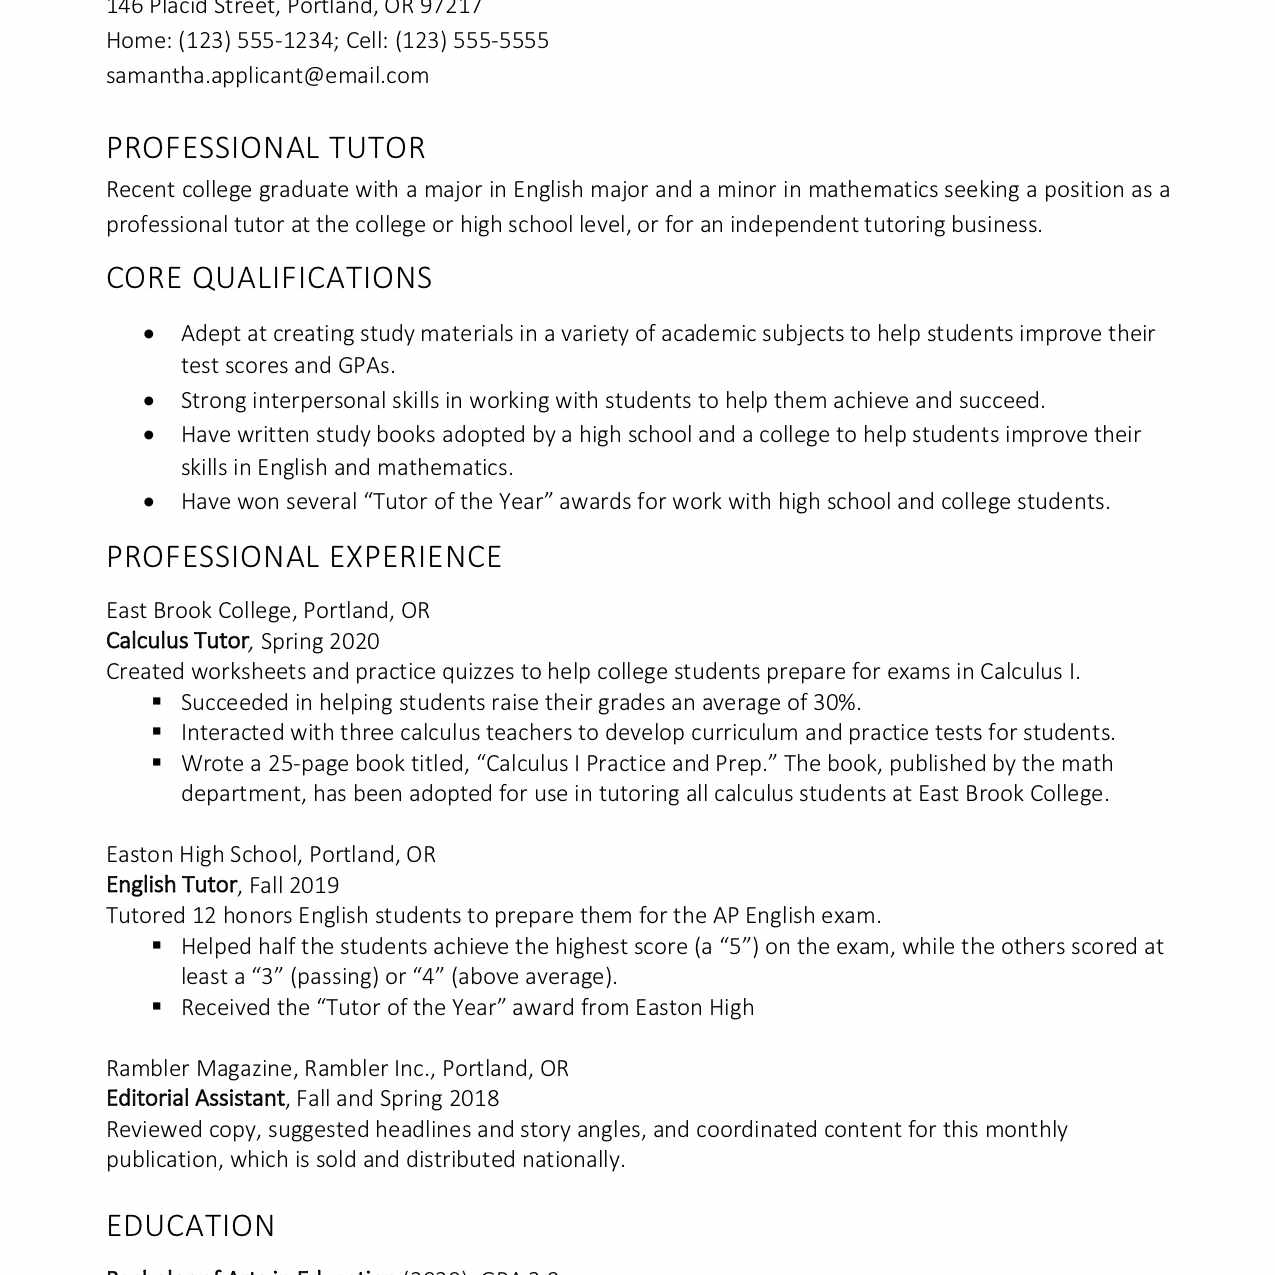 tutor resume and cover letter examples another word for on samanthaapplicant crystal Resume Another Word For Tutor On Resume